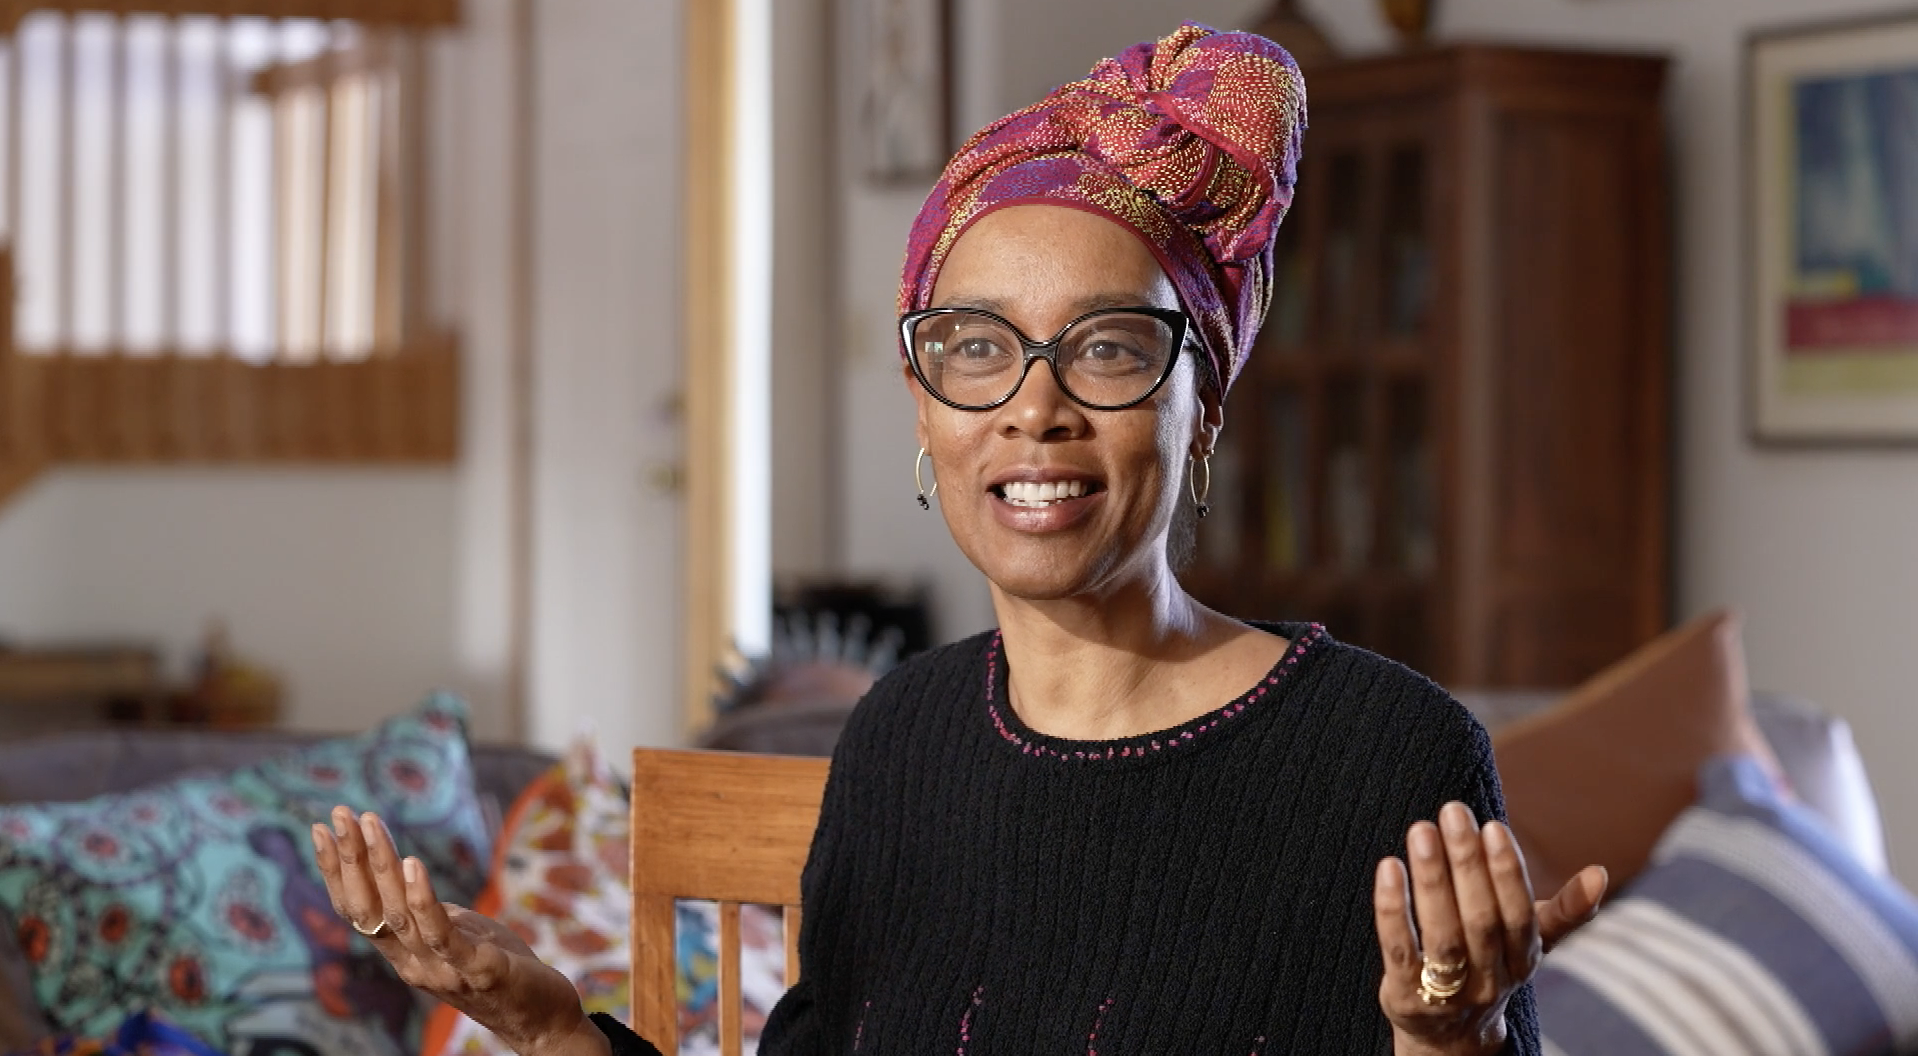 A dark-skinned women sits in a living room wearing a colorful headscarf knotted at the top; large, dark-framed glasses; and a long-sleeved black sweater. Her arms are stretched out at her sides with her palms facing up.